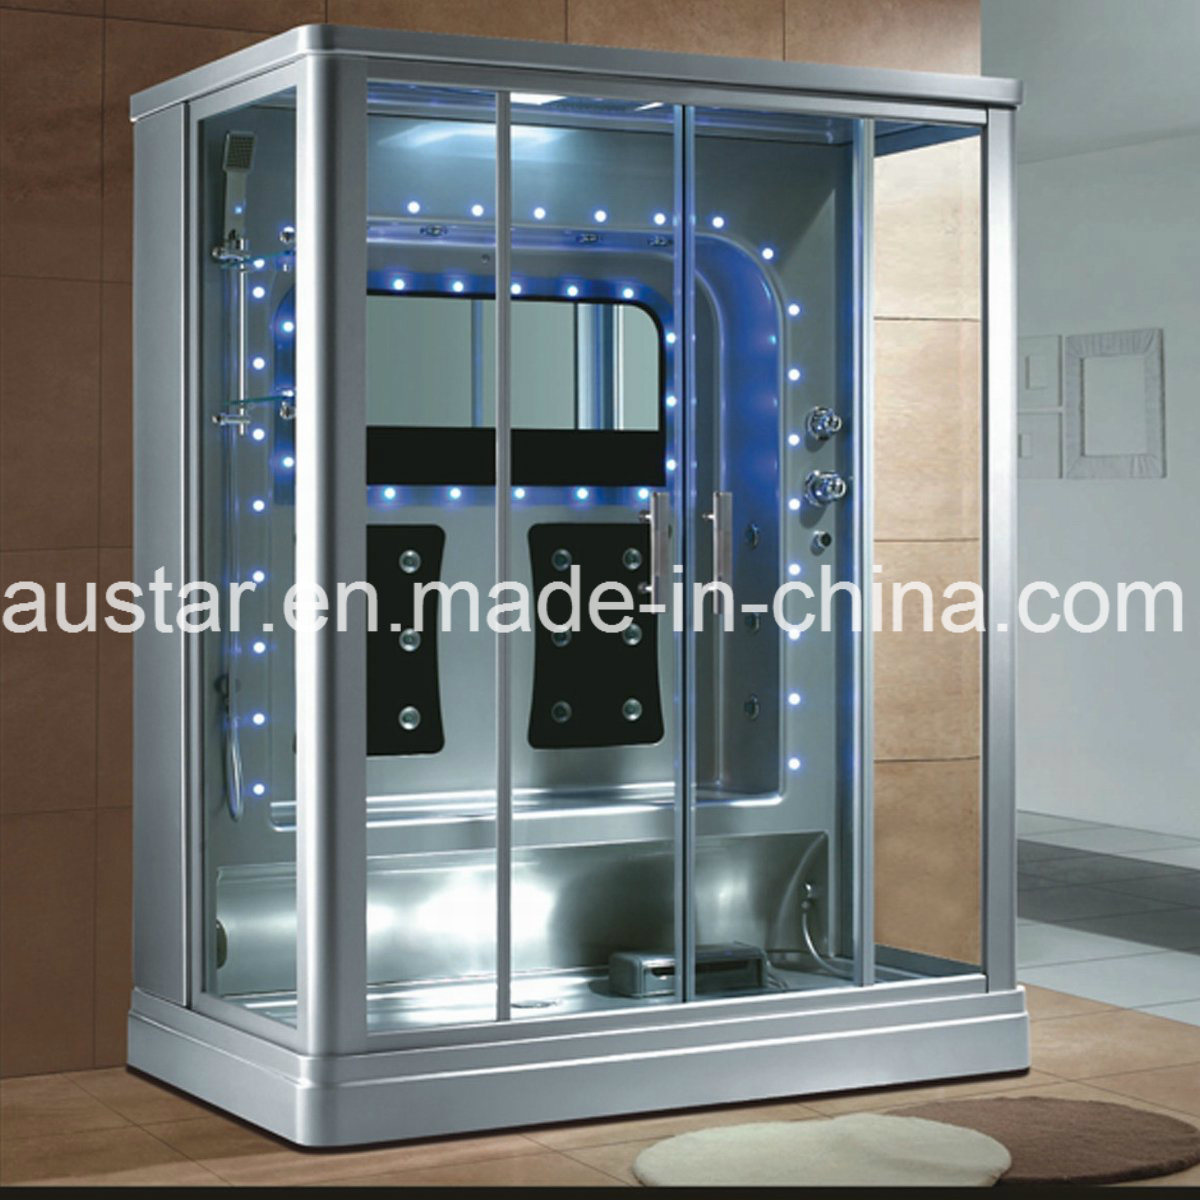 1600mm Rectangle Gray Steam Sauna with Shower for 2 Persons (AT-0219)